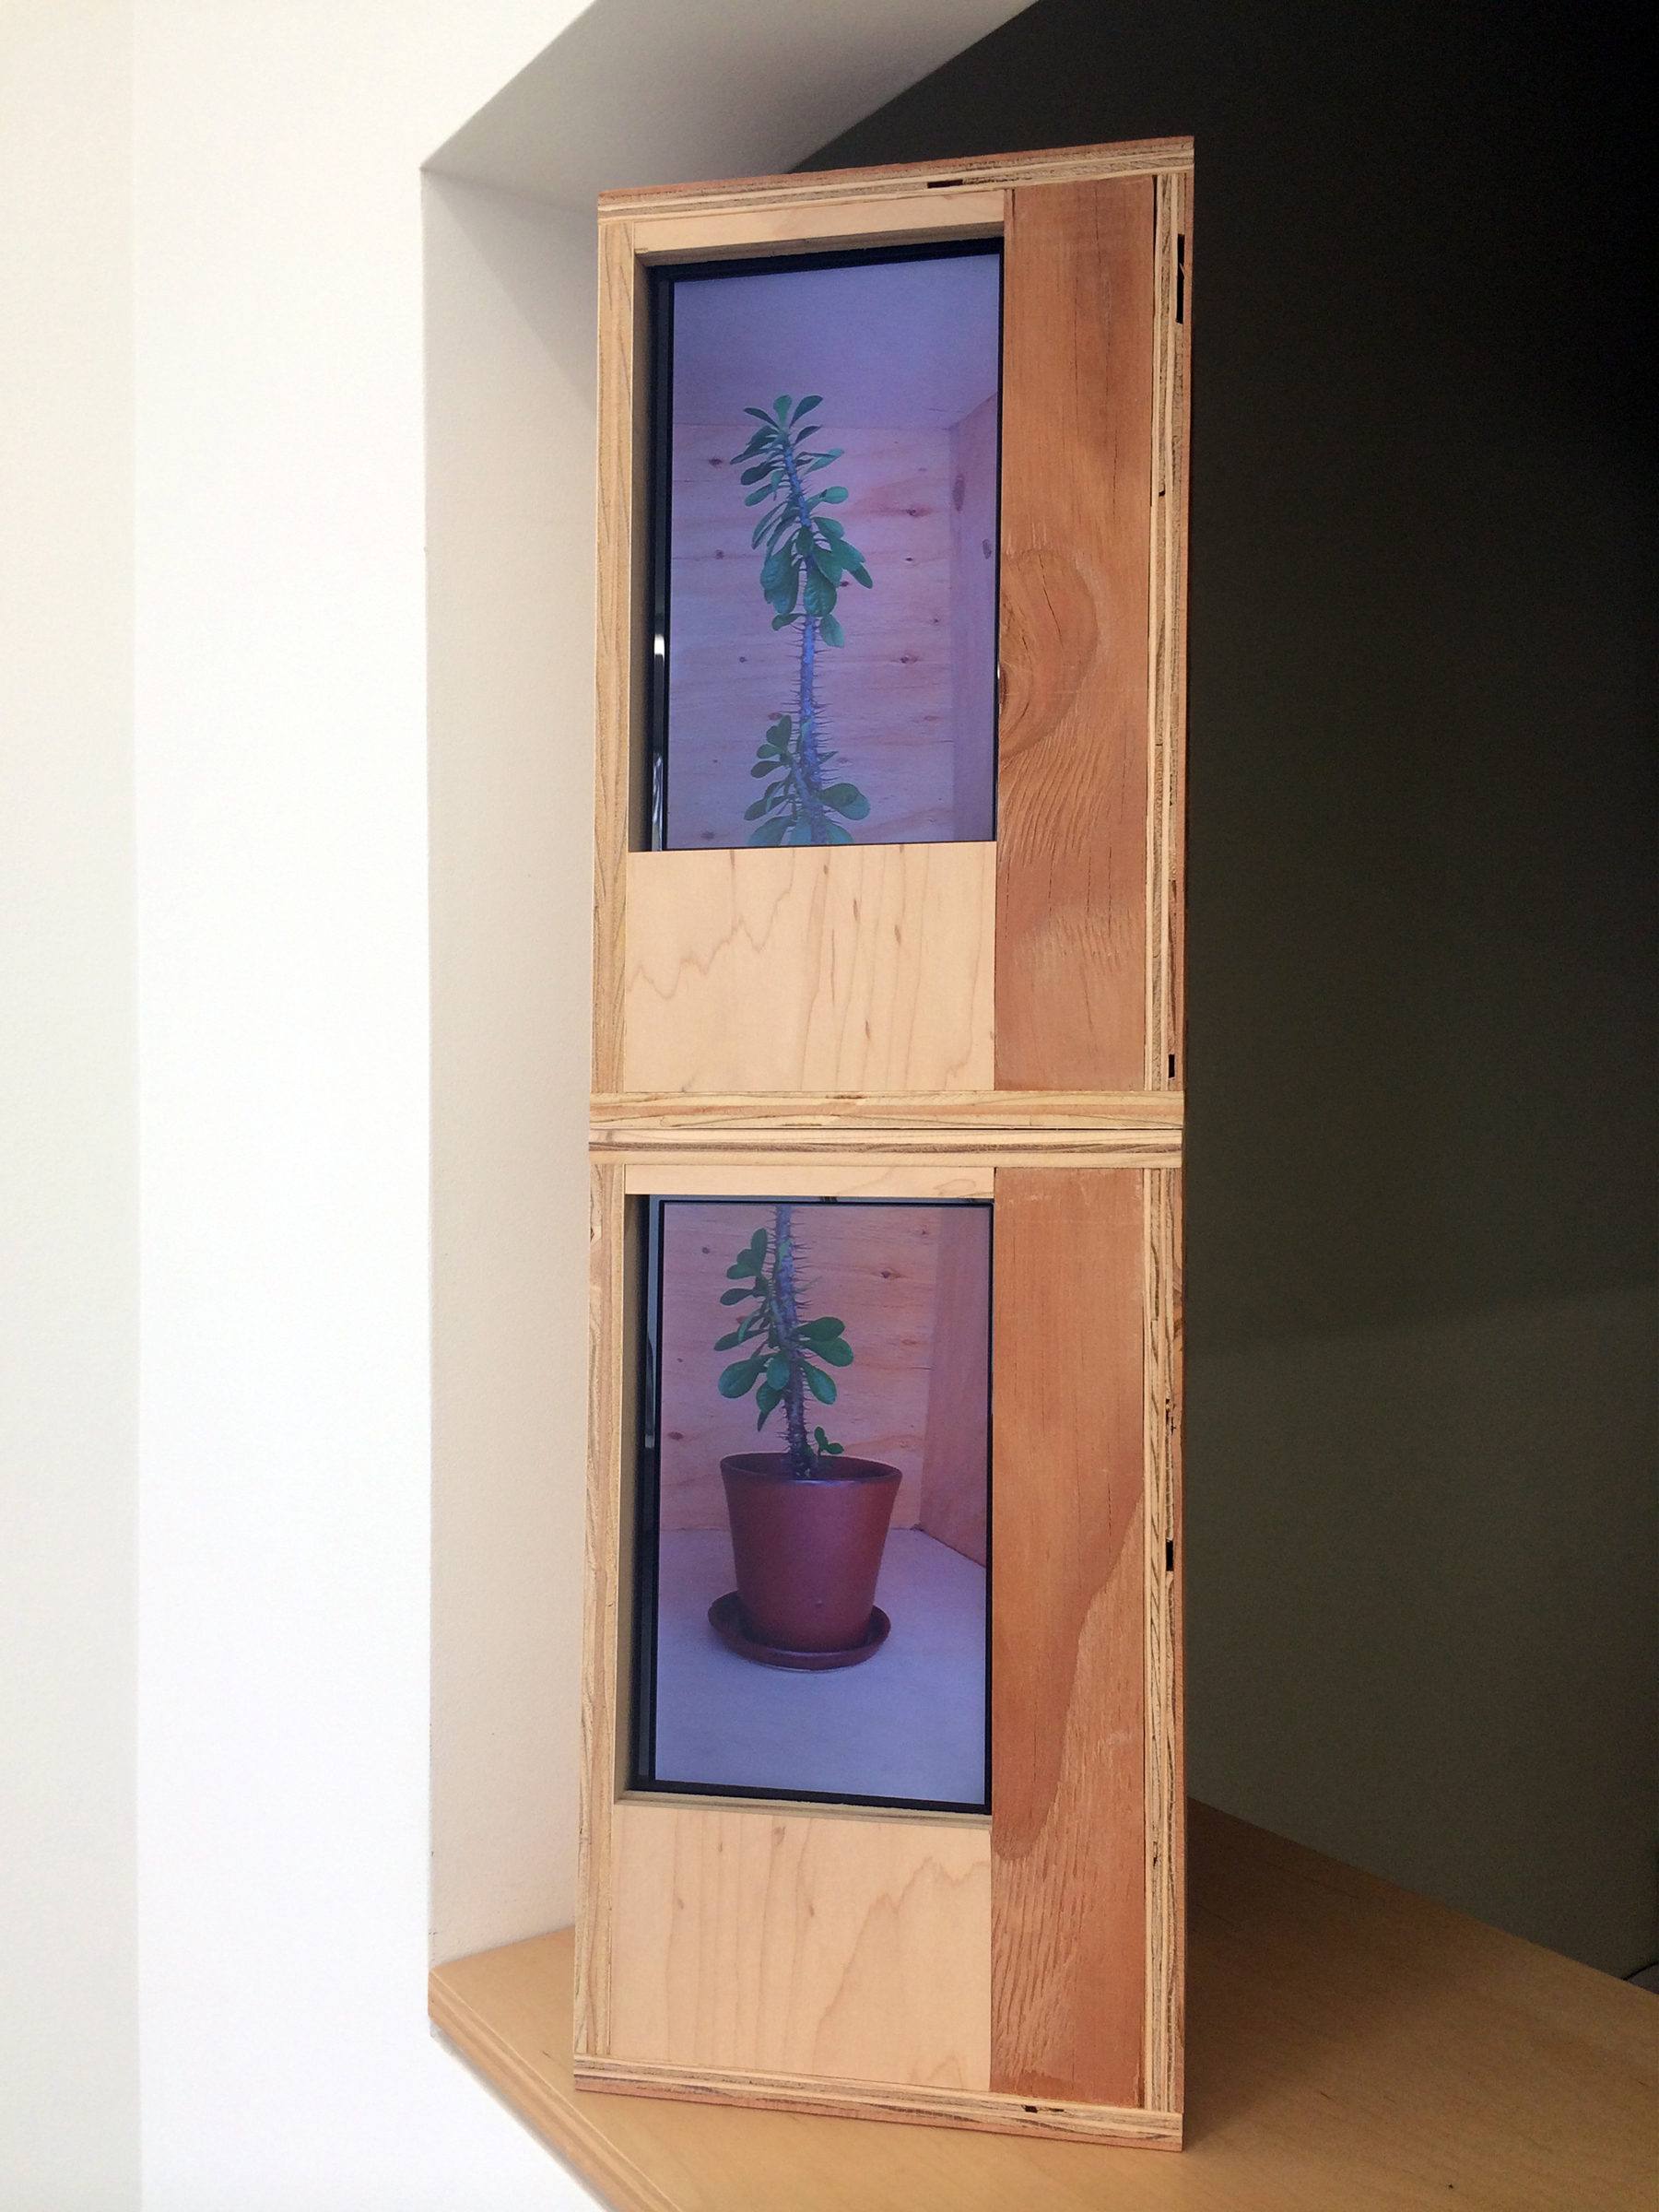 """JOSHUA PIEPER   Video Cactus , 2014, LCD monitors, dvds and wood housing, 25.5"""" x 6.25"""" x 7.75"""""""